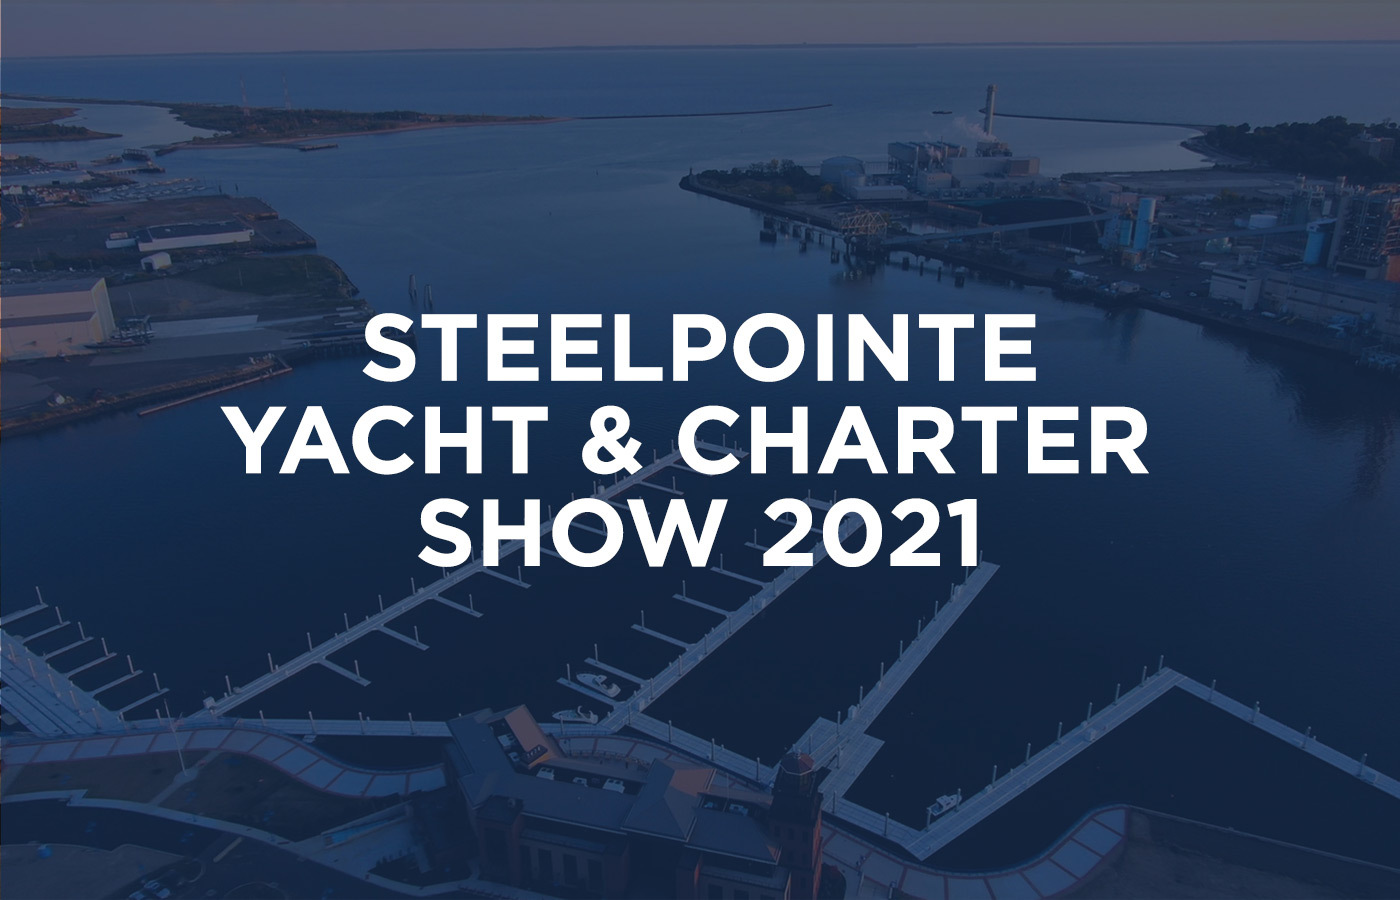 Steelpointe Yacht & Charter Show 2021 [Connecticut Yachts For Sale]